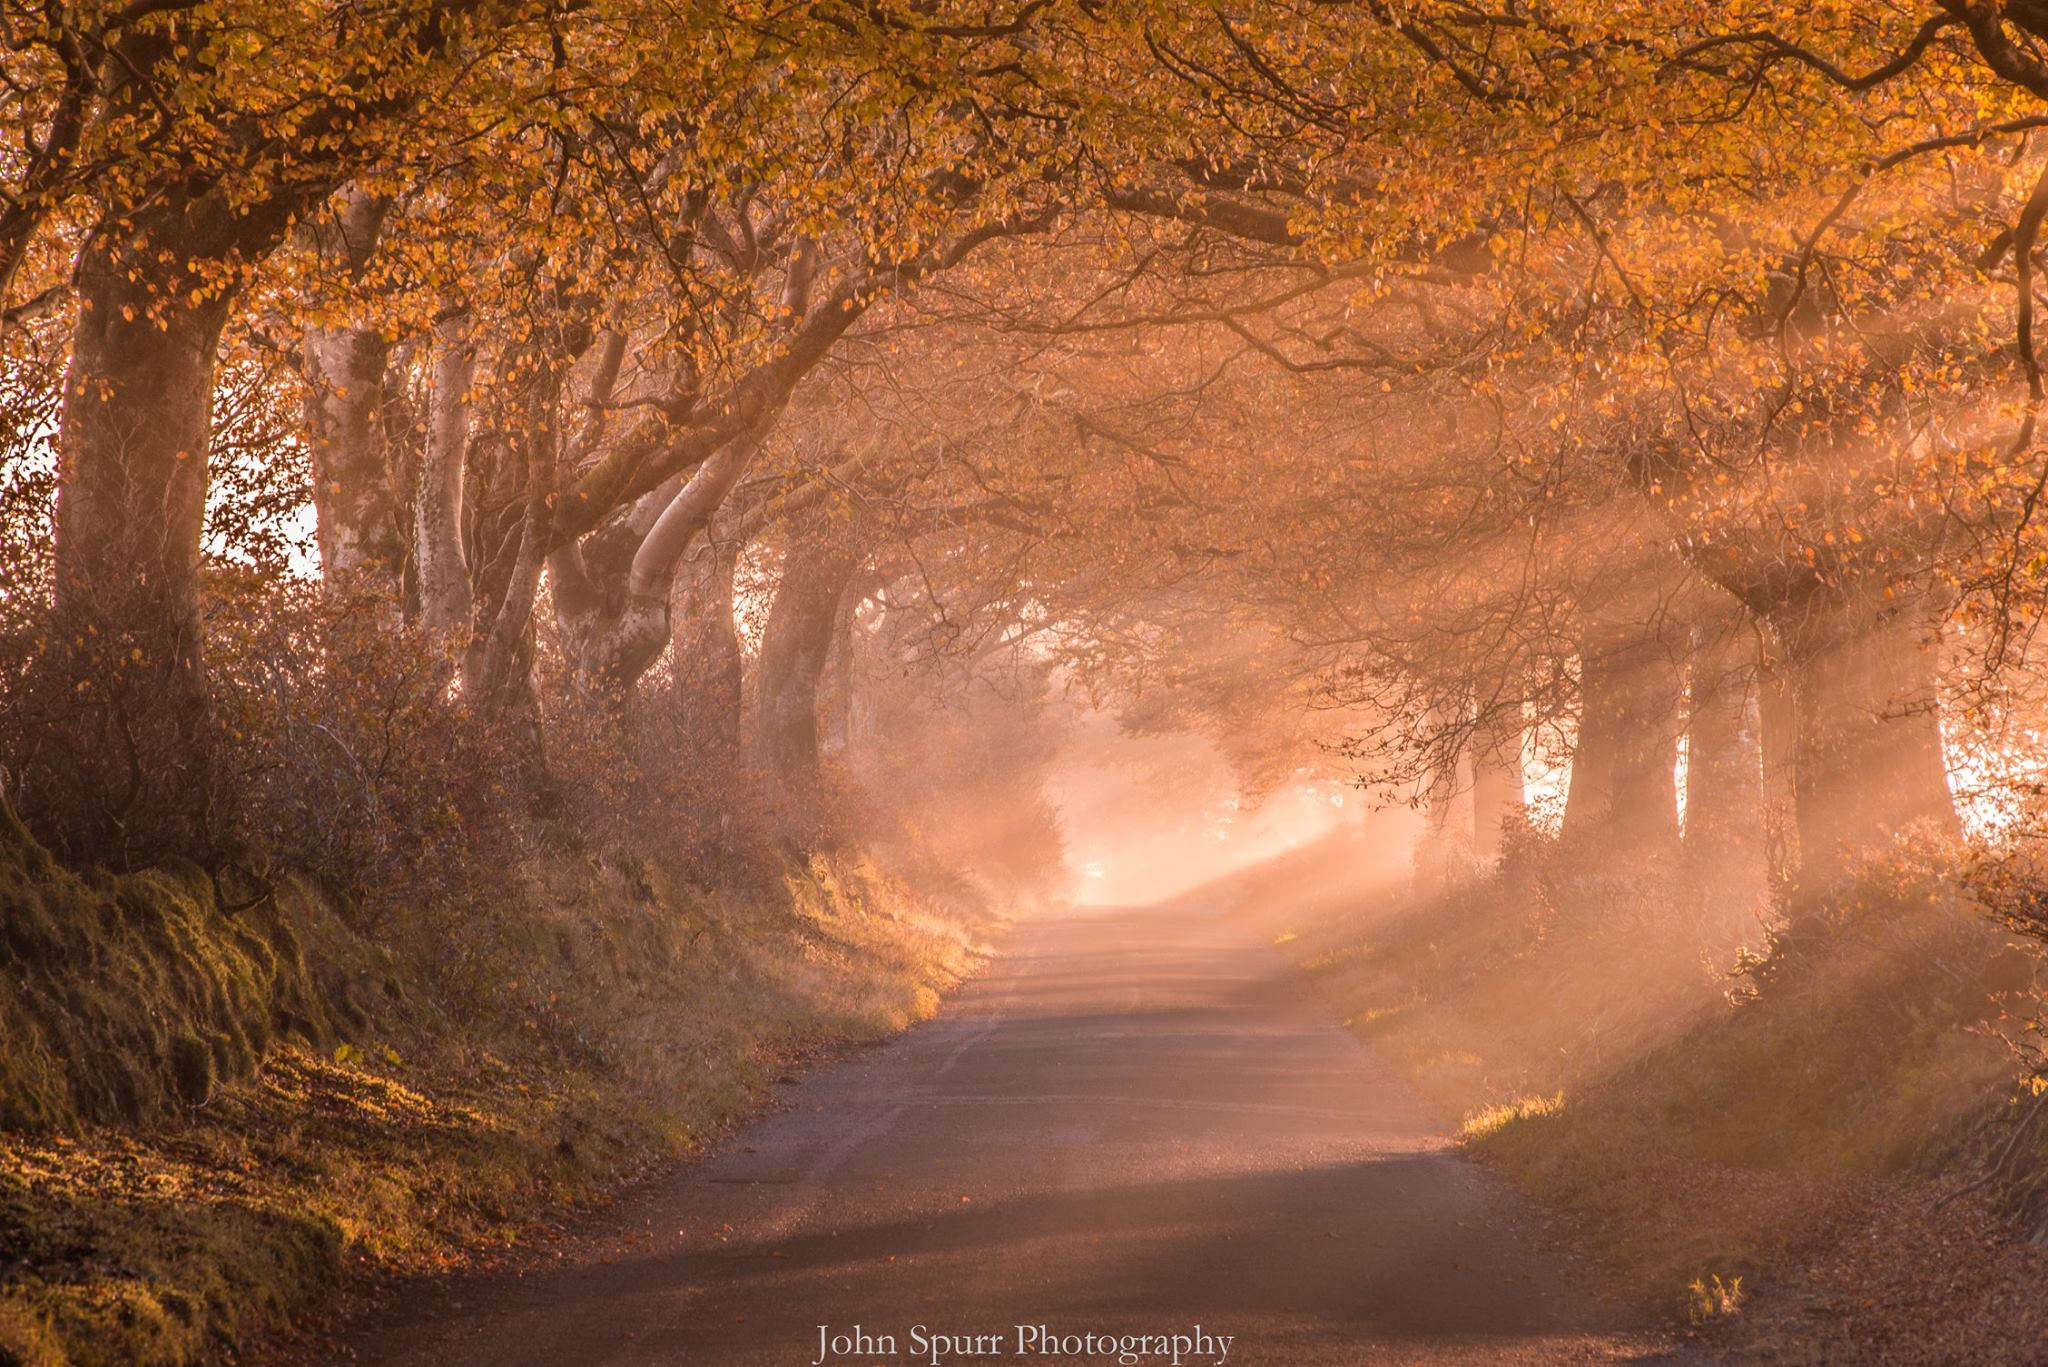 New in the Exmoor Store: Greeting Cards by John Spurr Photography